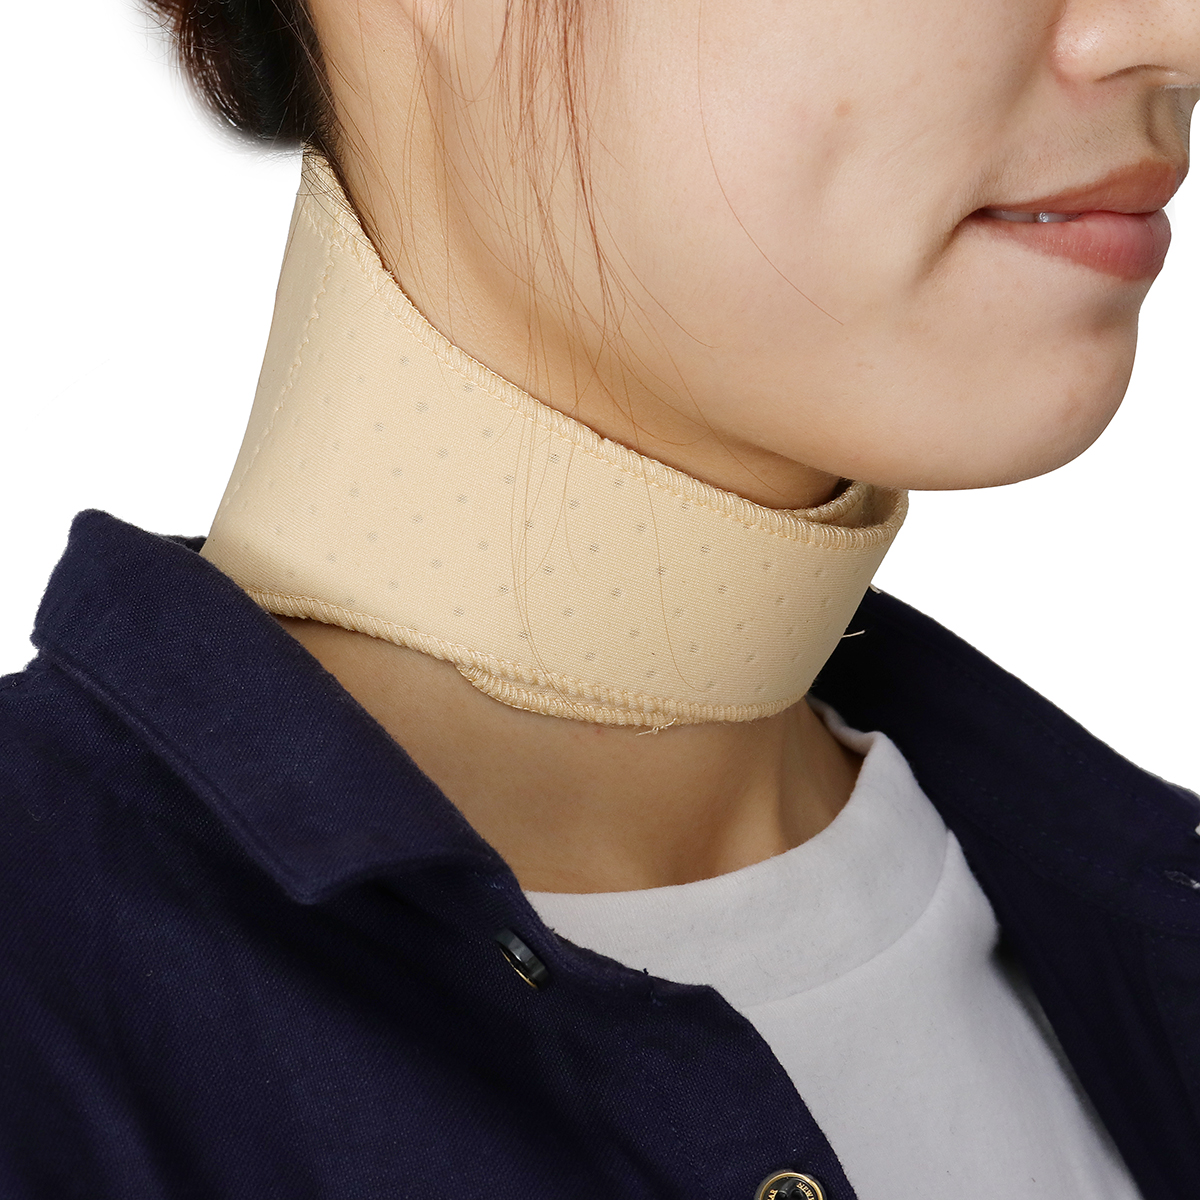 Therapy Wrap Protect Tourmaline Belt Magnetic Neck Brace